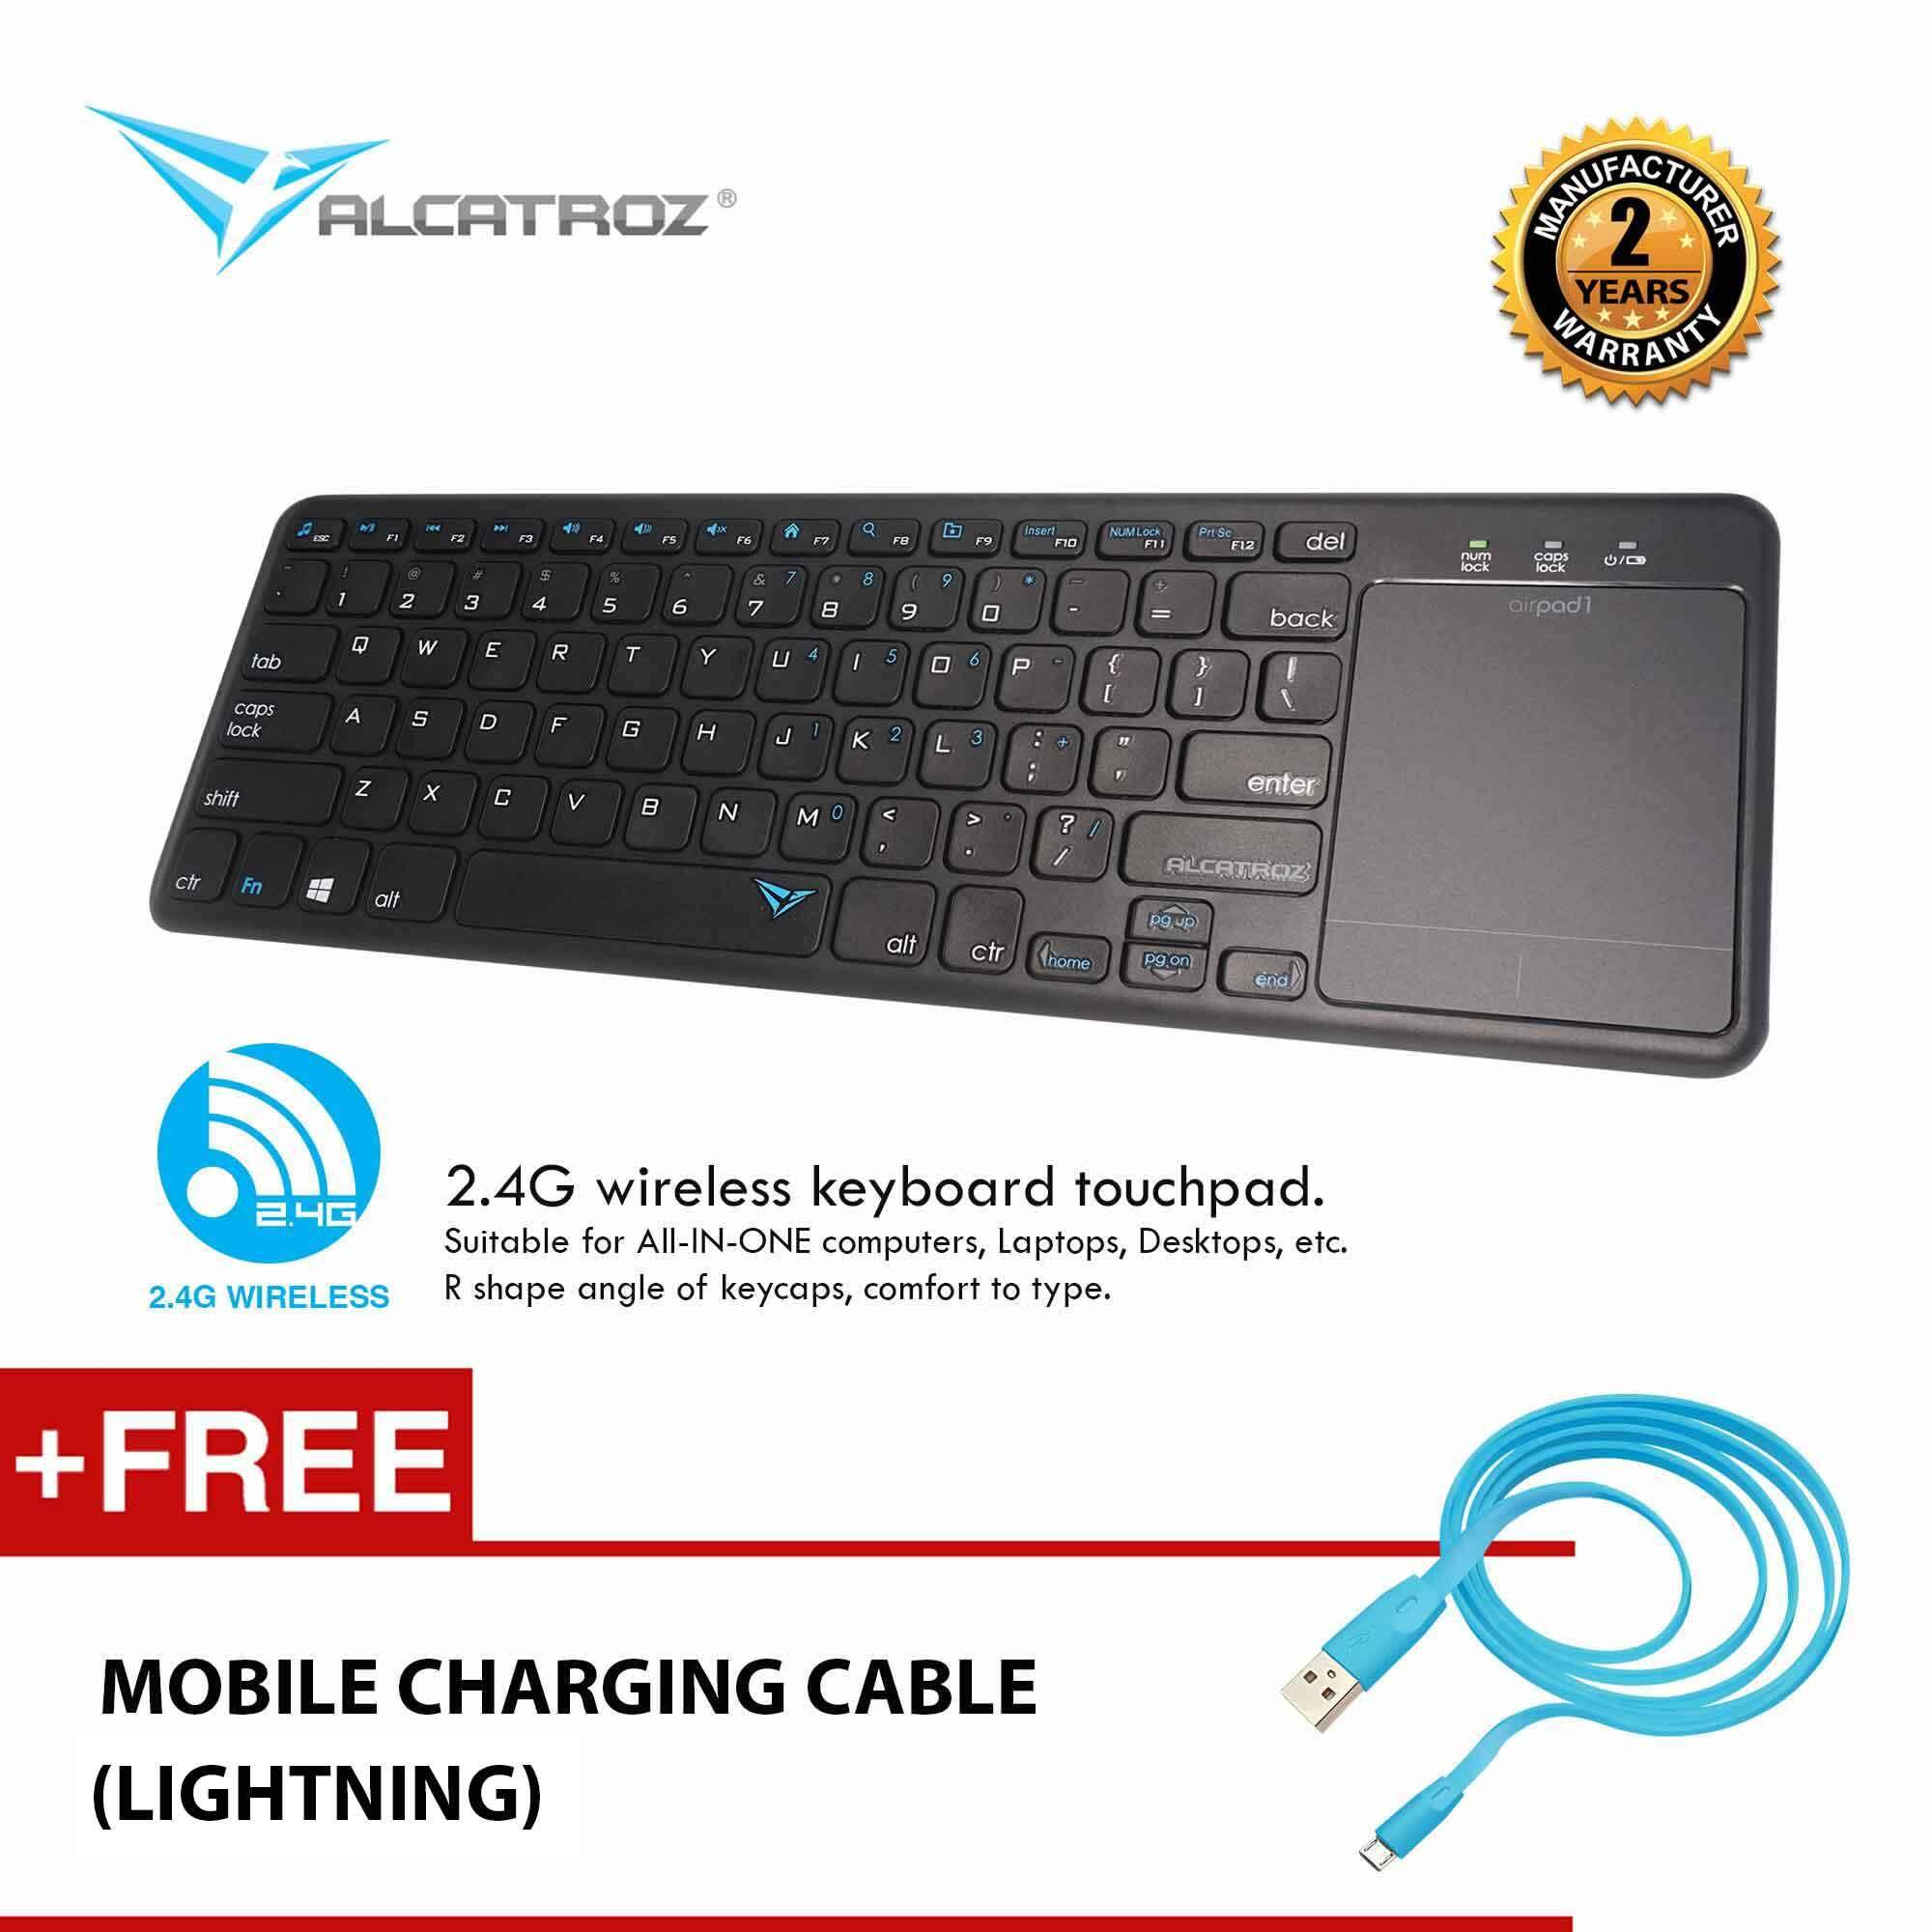 Alcatroz AirPad 1 Wireless Keyboard With Touchpad for Smart TV & puter PS4 Keyboard patible